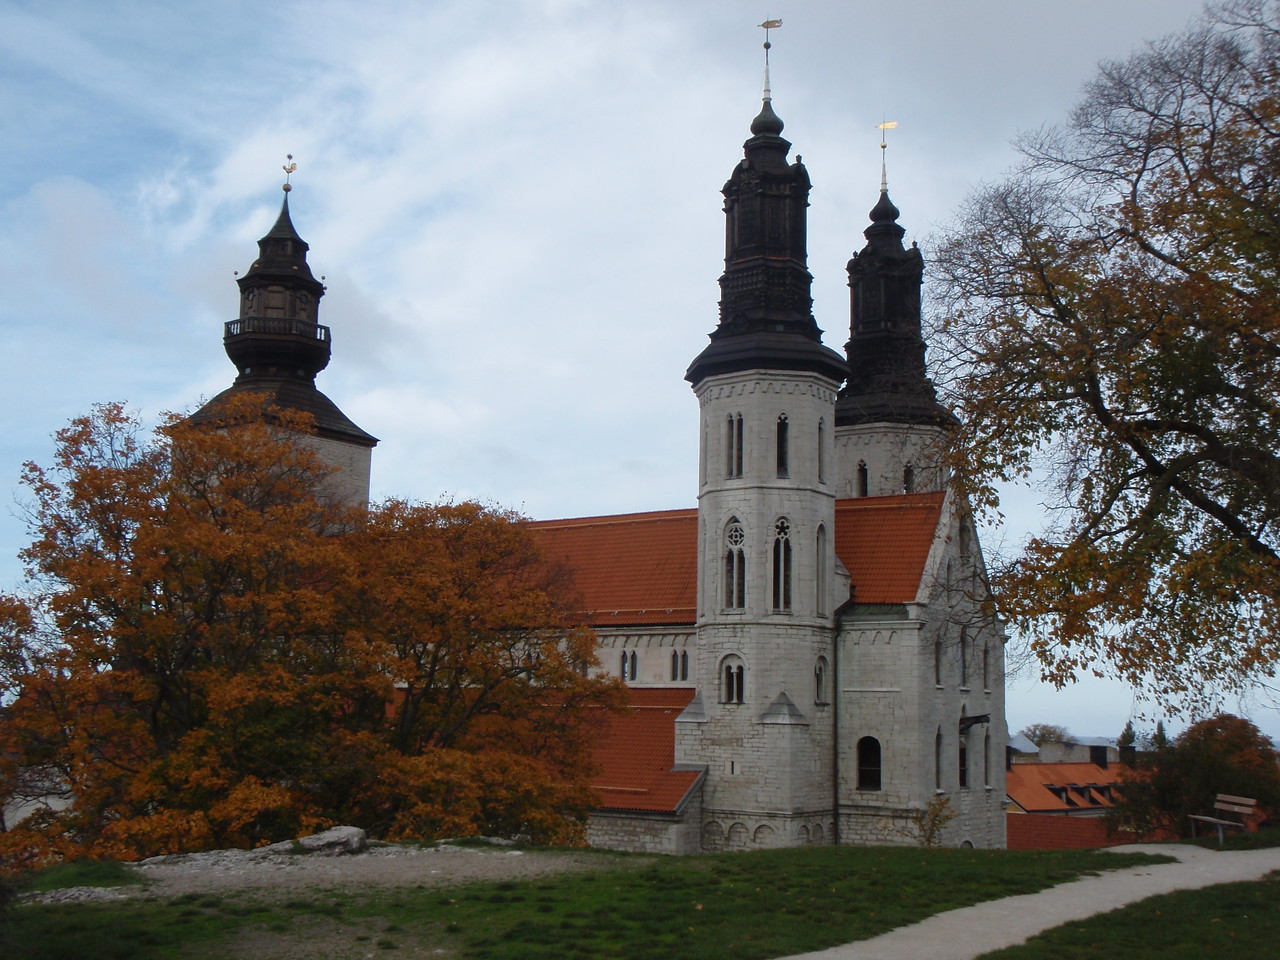 The Merchant's church in Visby